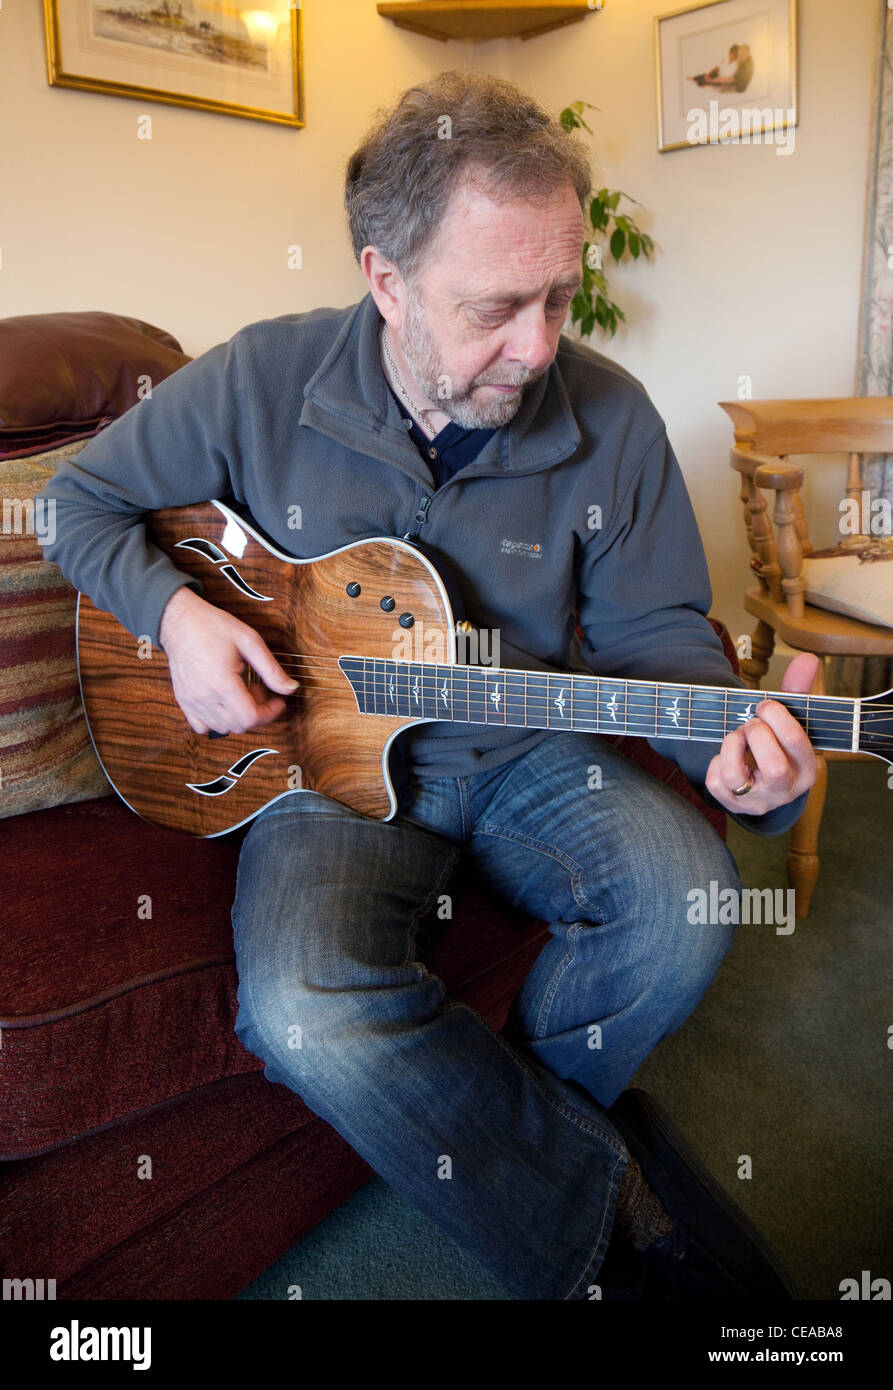 A middle aged man playing a Taylor acoustic guitar, UK - Stock Image